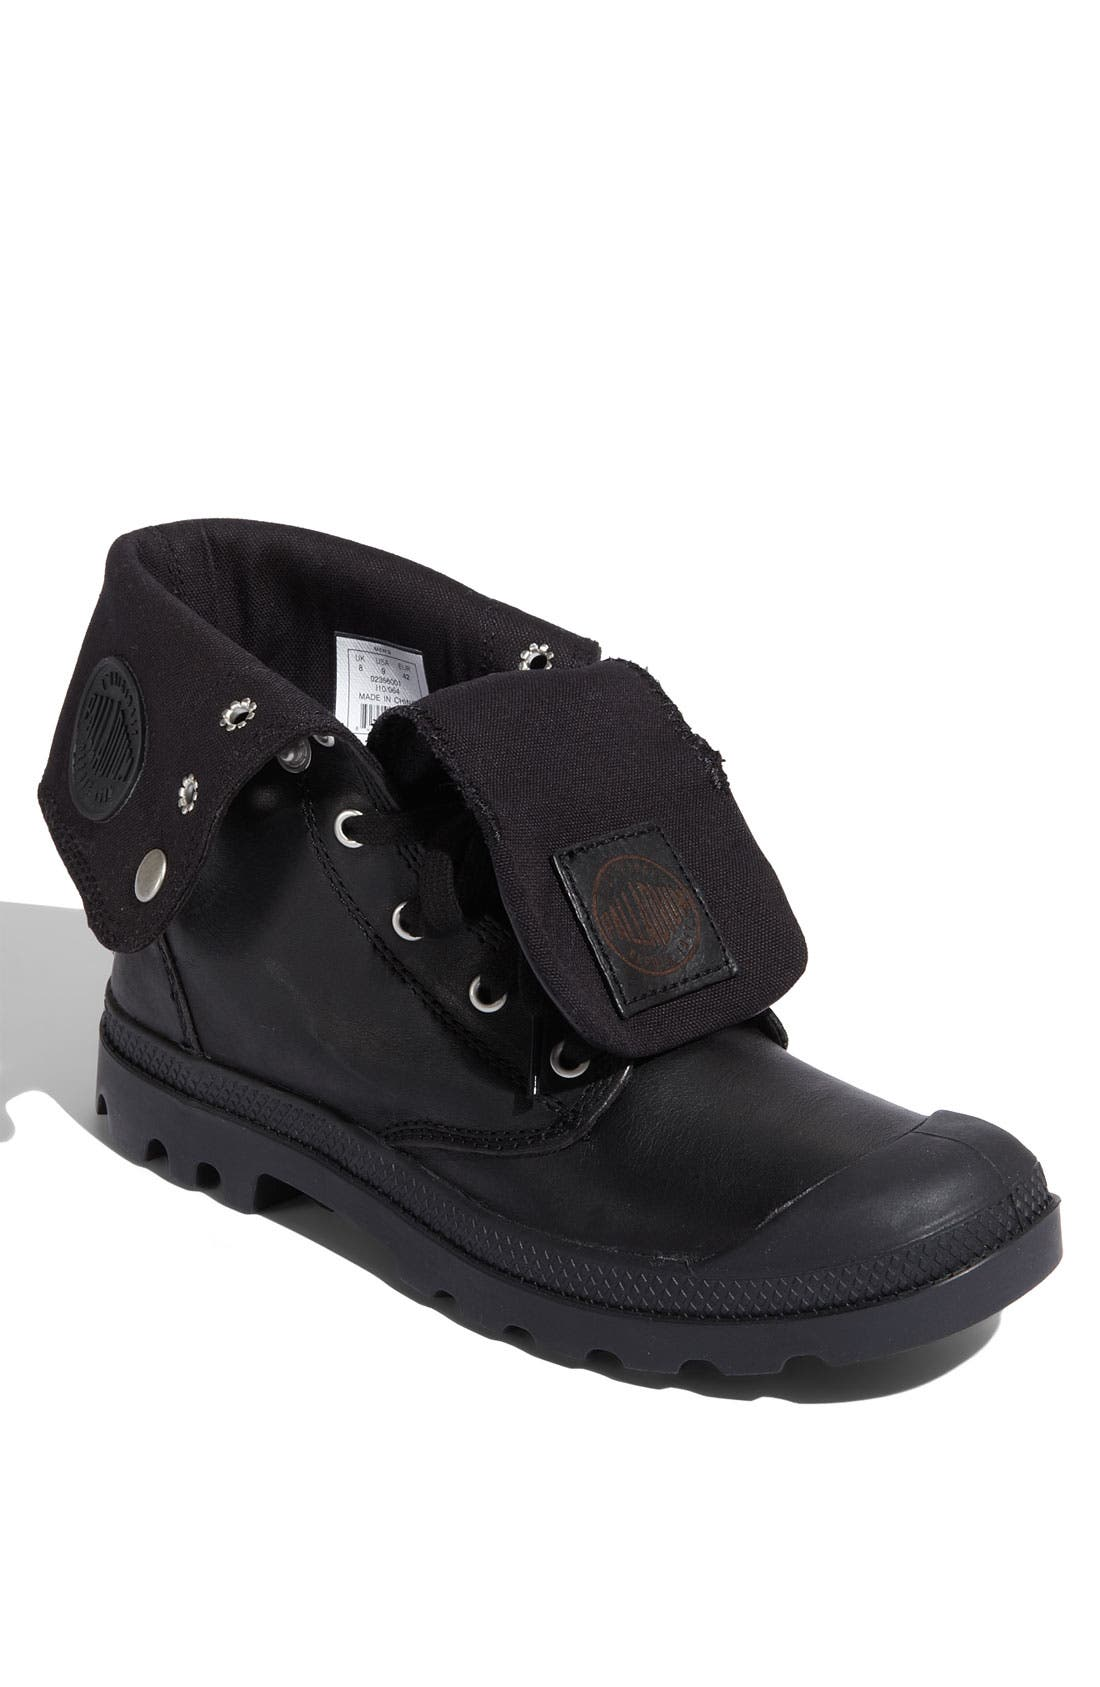 Alternate Image 1 Selected - Palladium 'Baggy' Leather Roll Down Boot